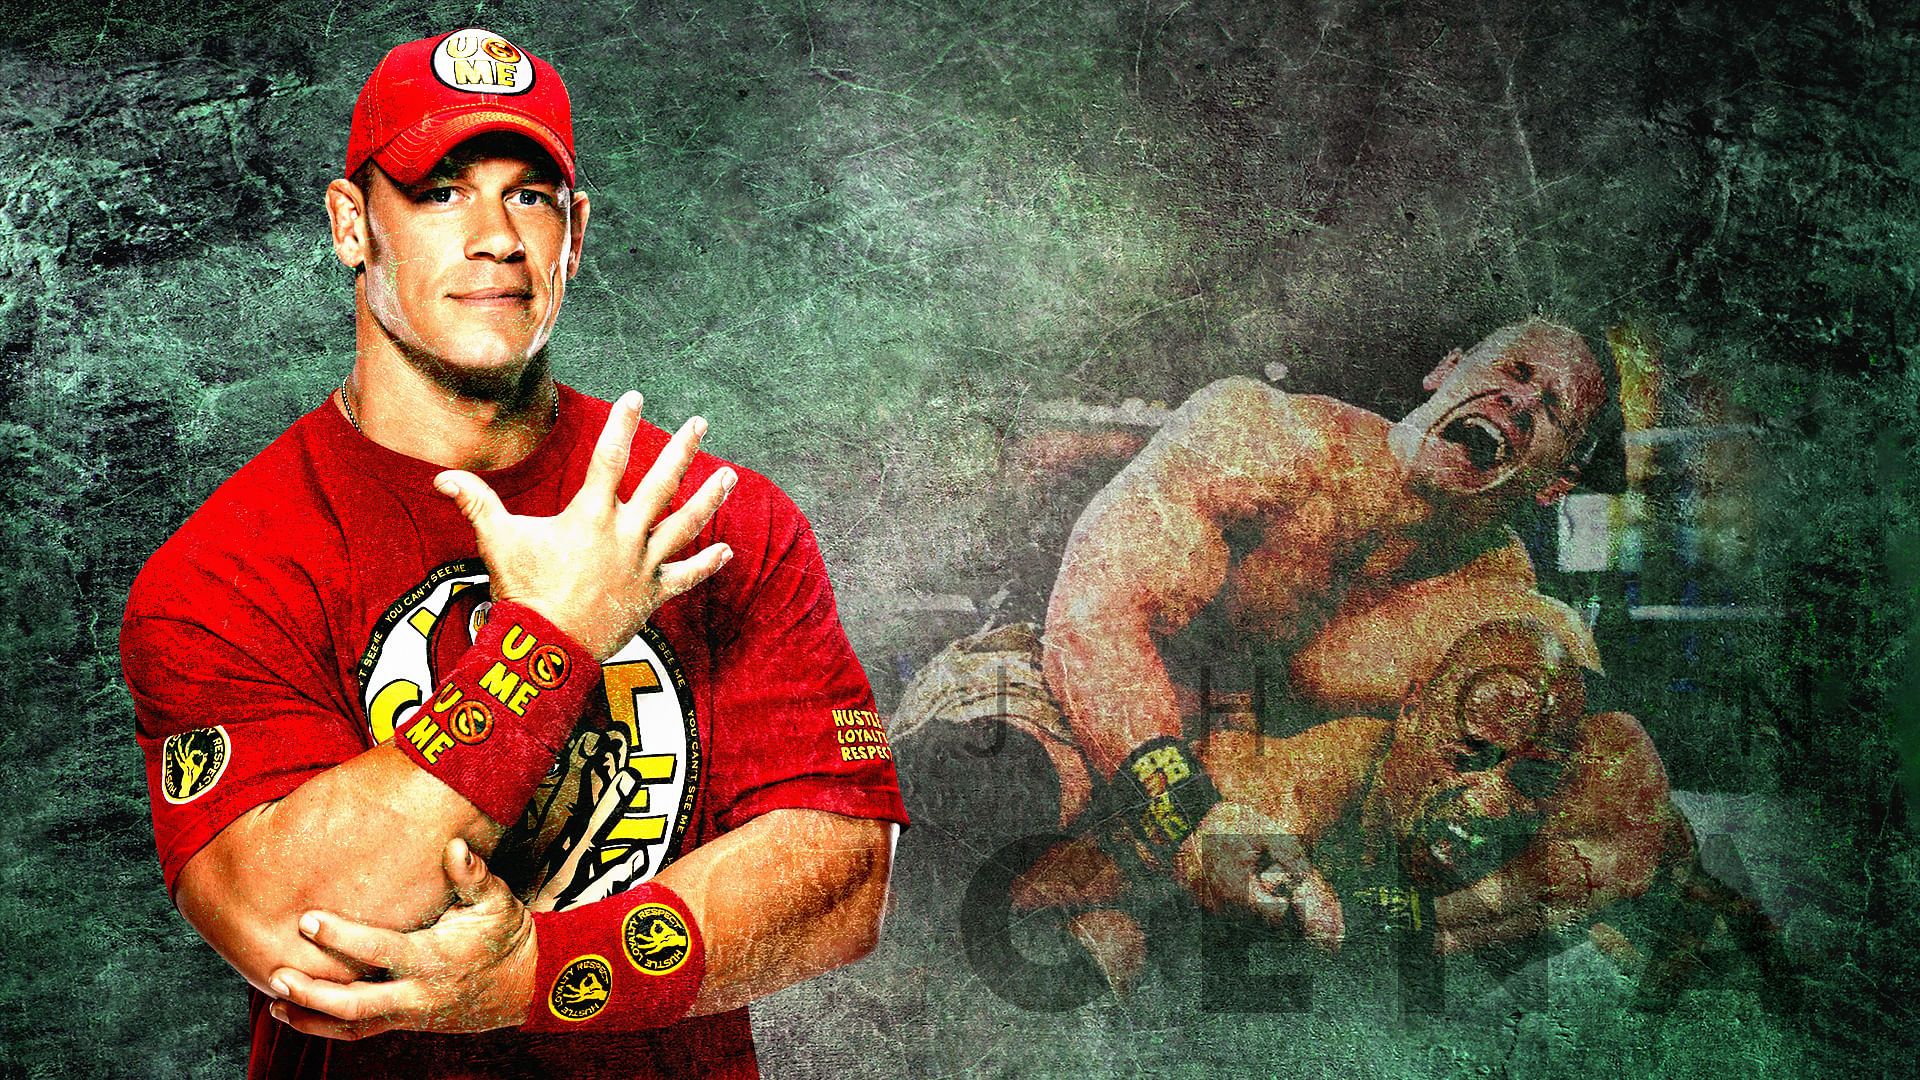 wwe wallpaper 1280x1024 jhone chena - photo #25